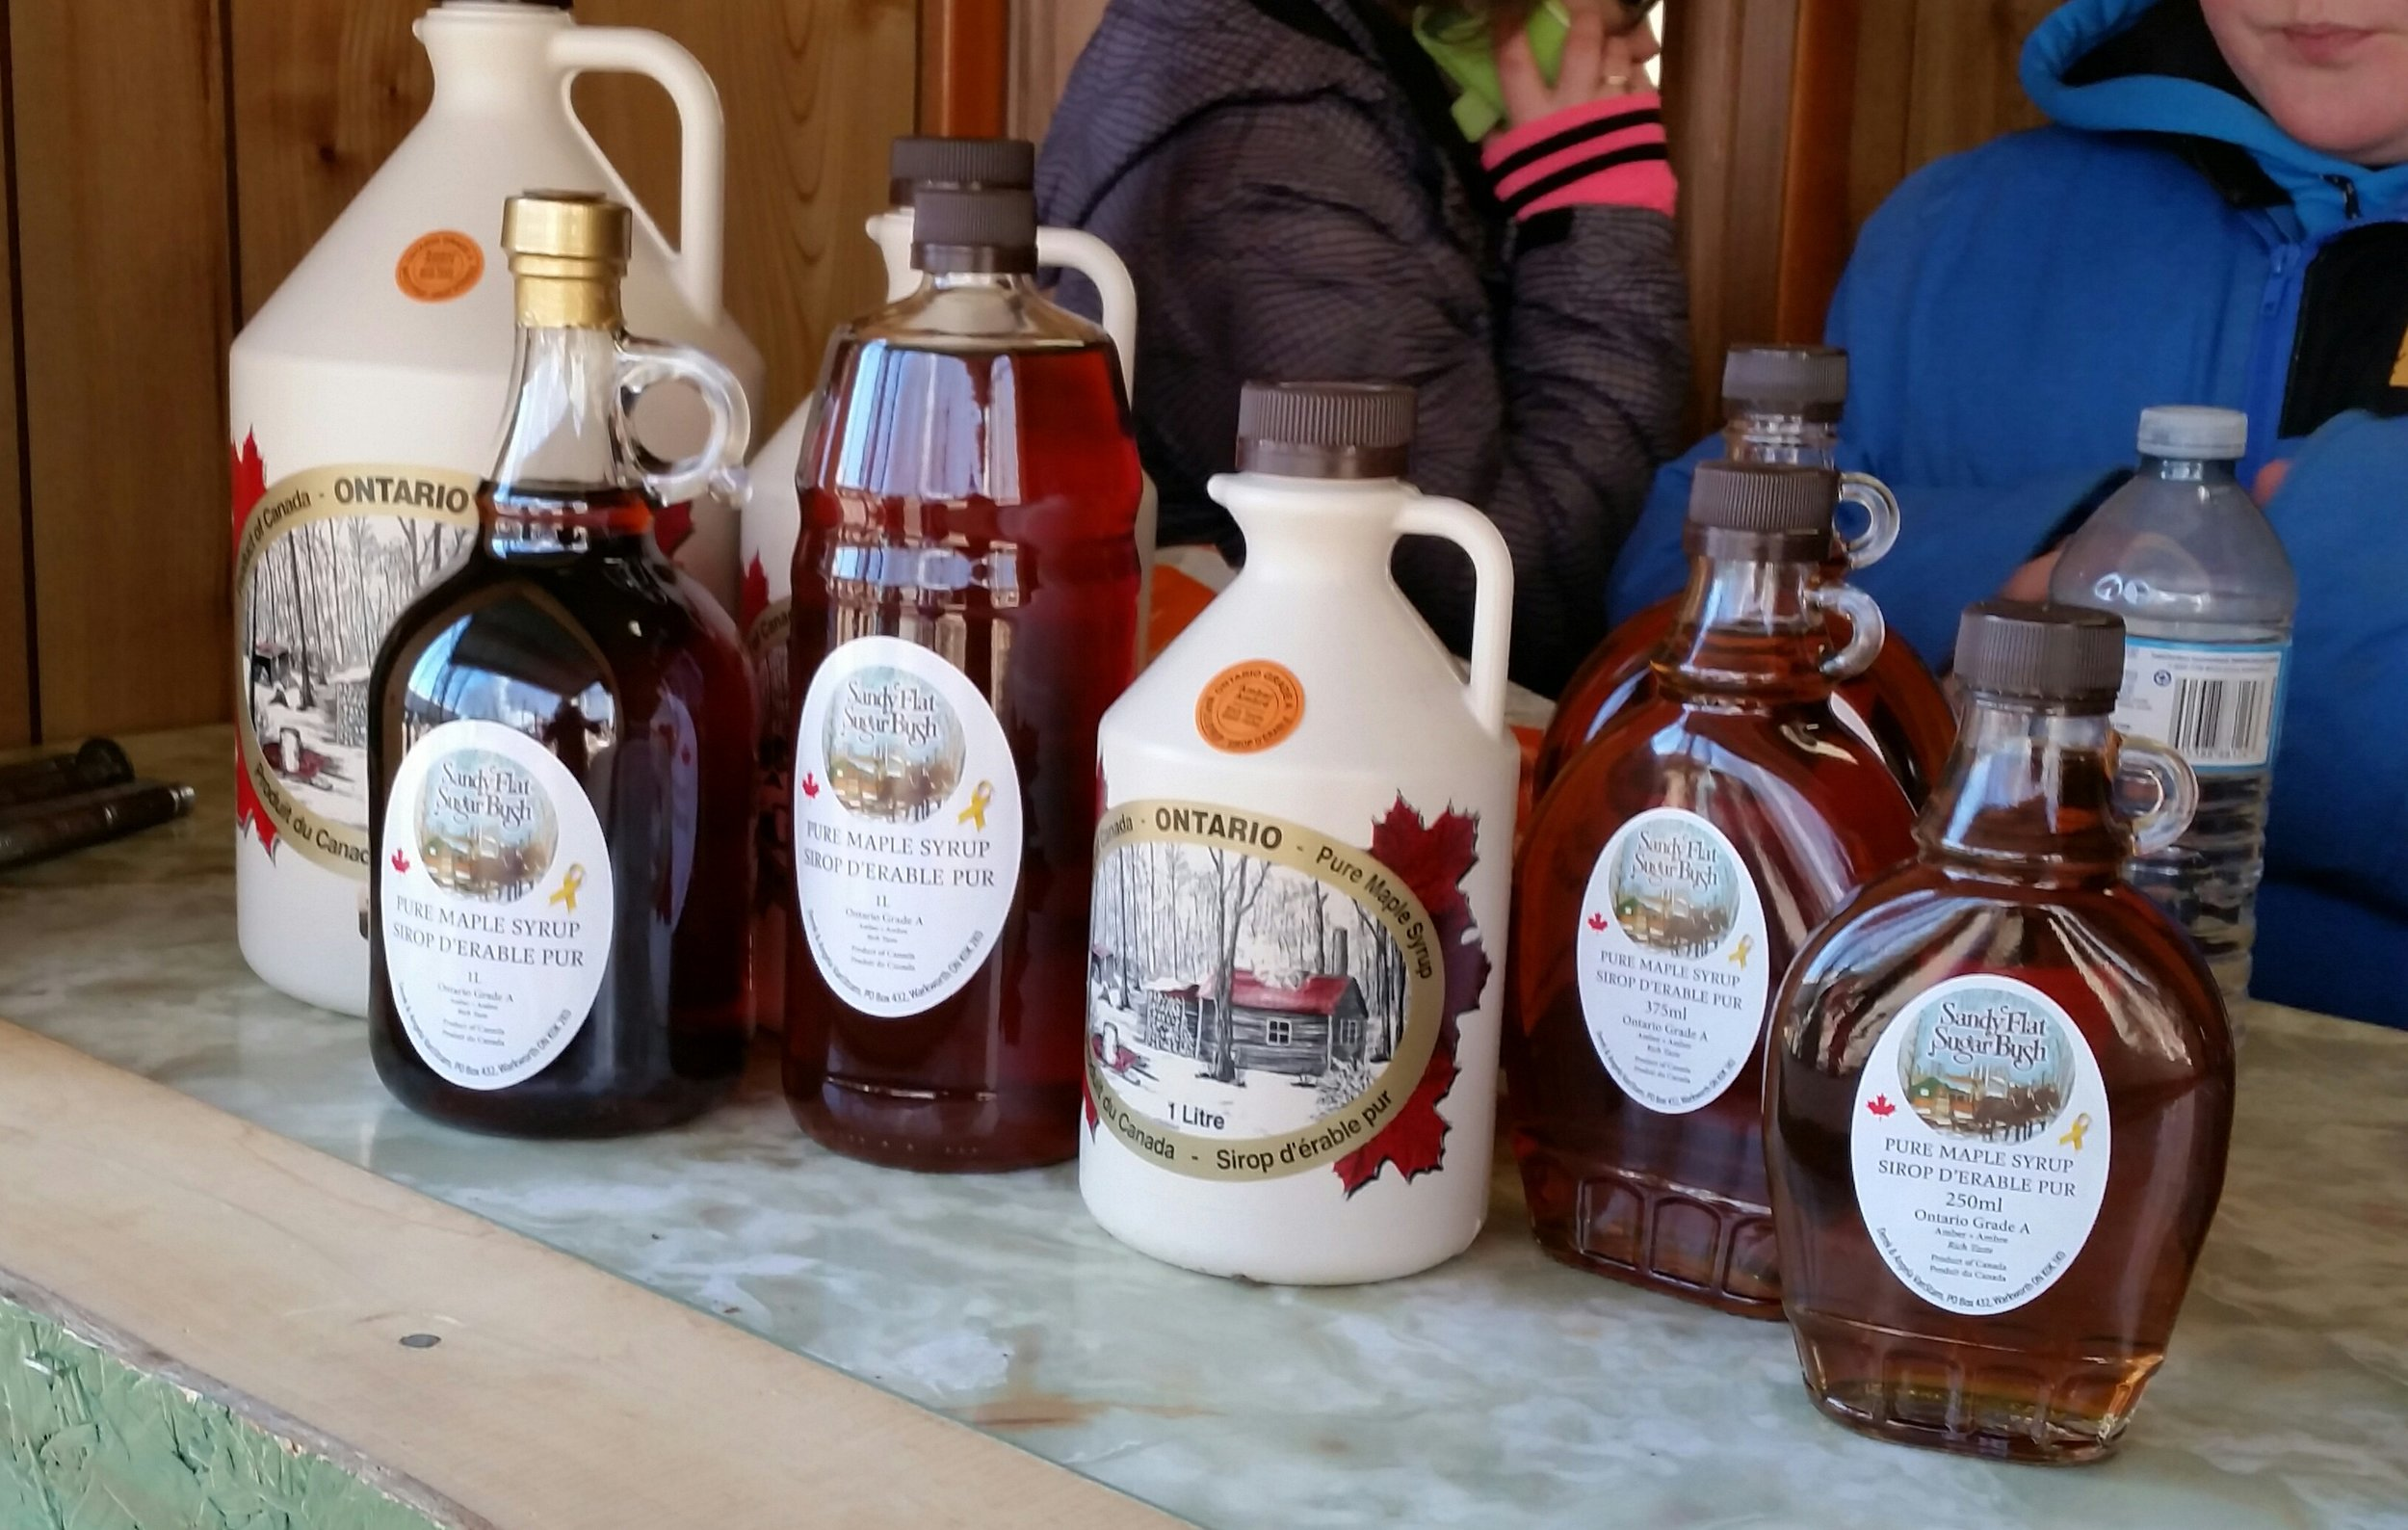 Lots and lots of maple syrup from the Sandy Flats Maple Sugar Bush.